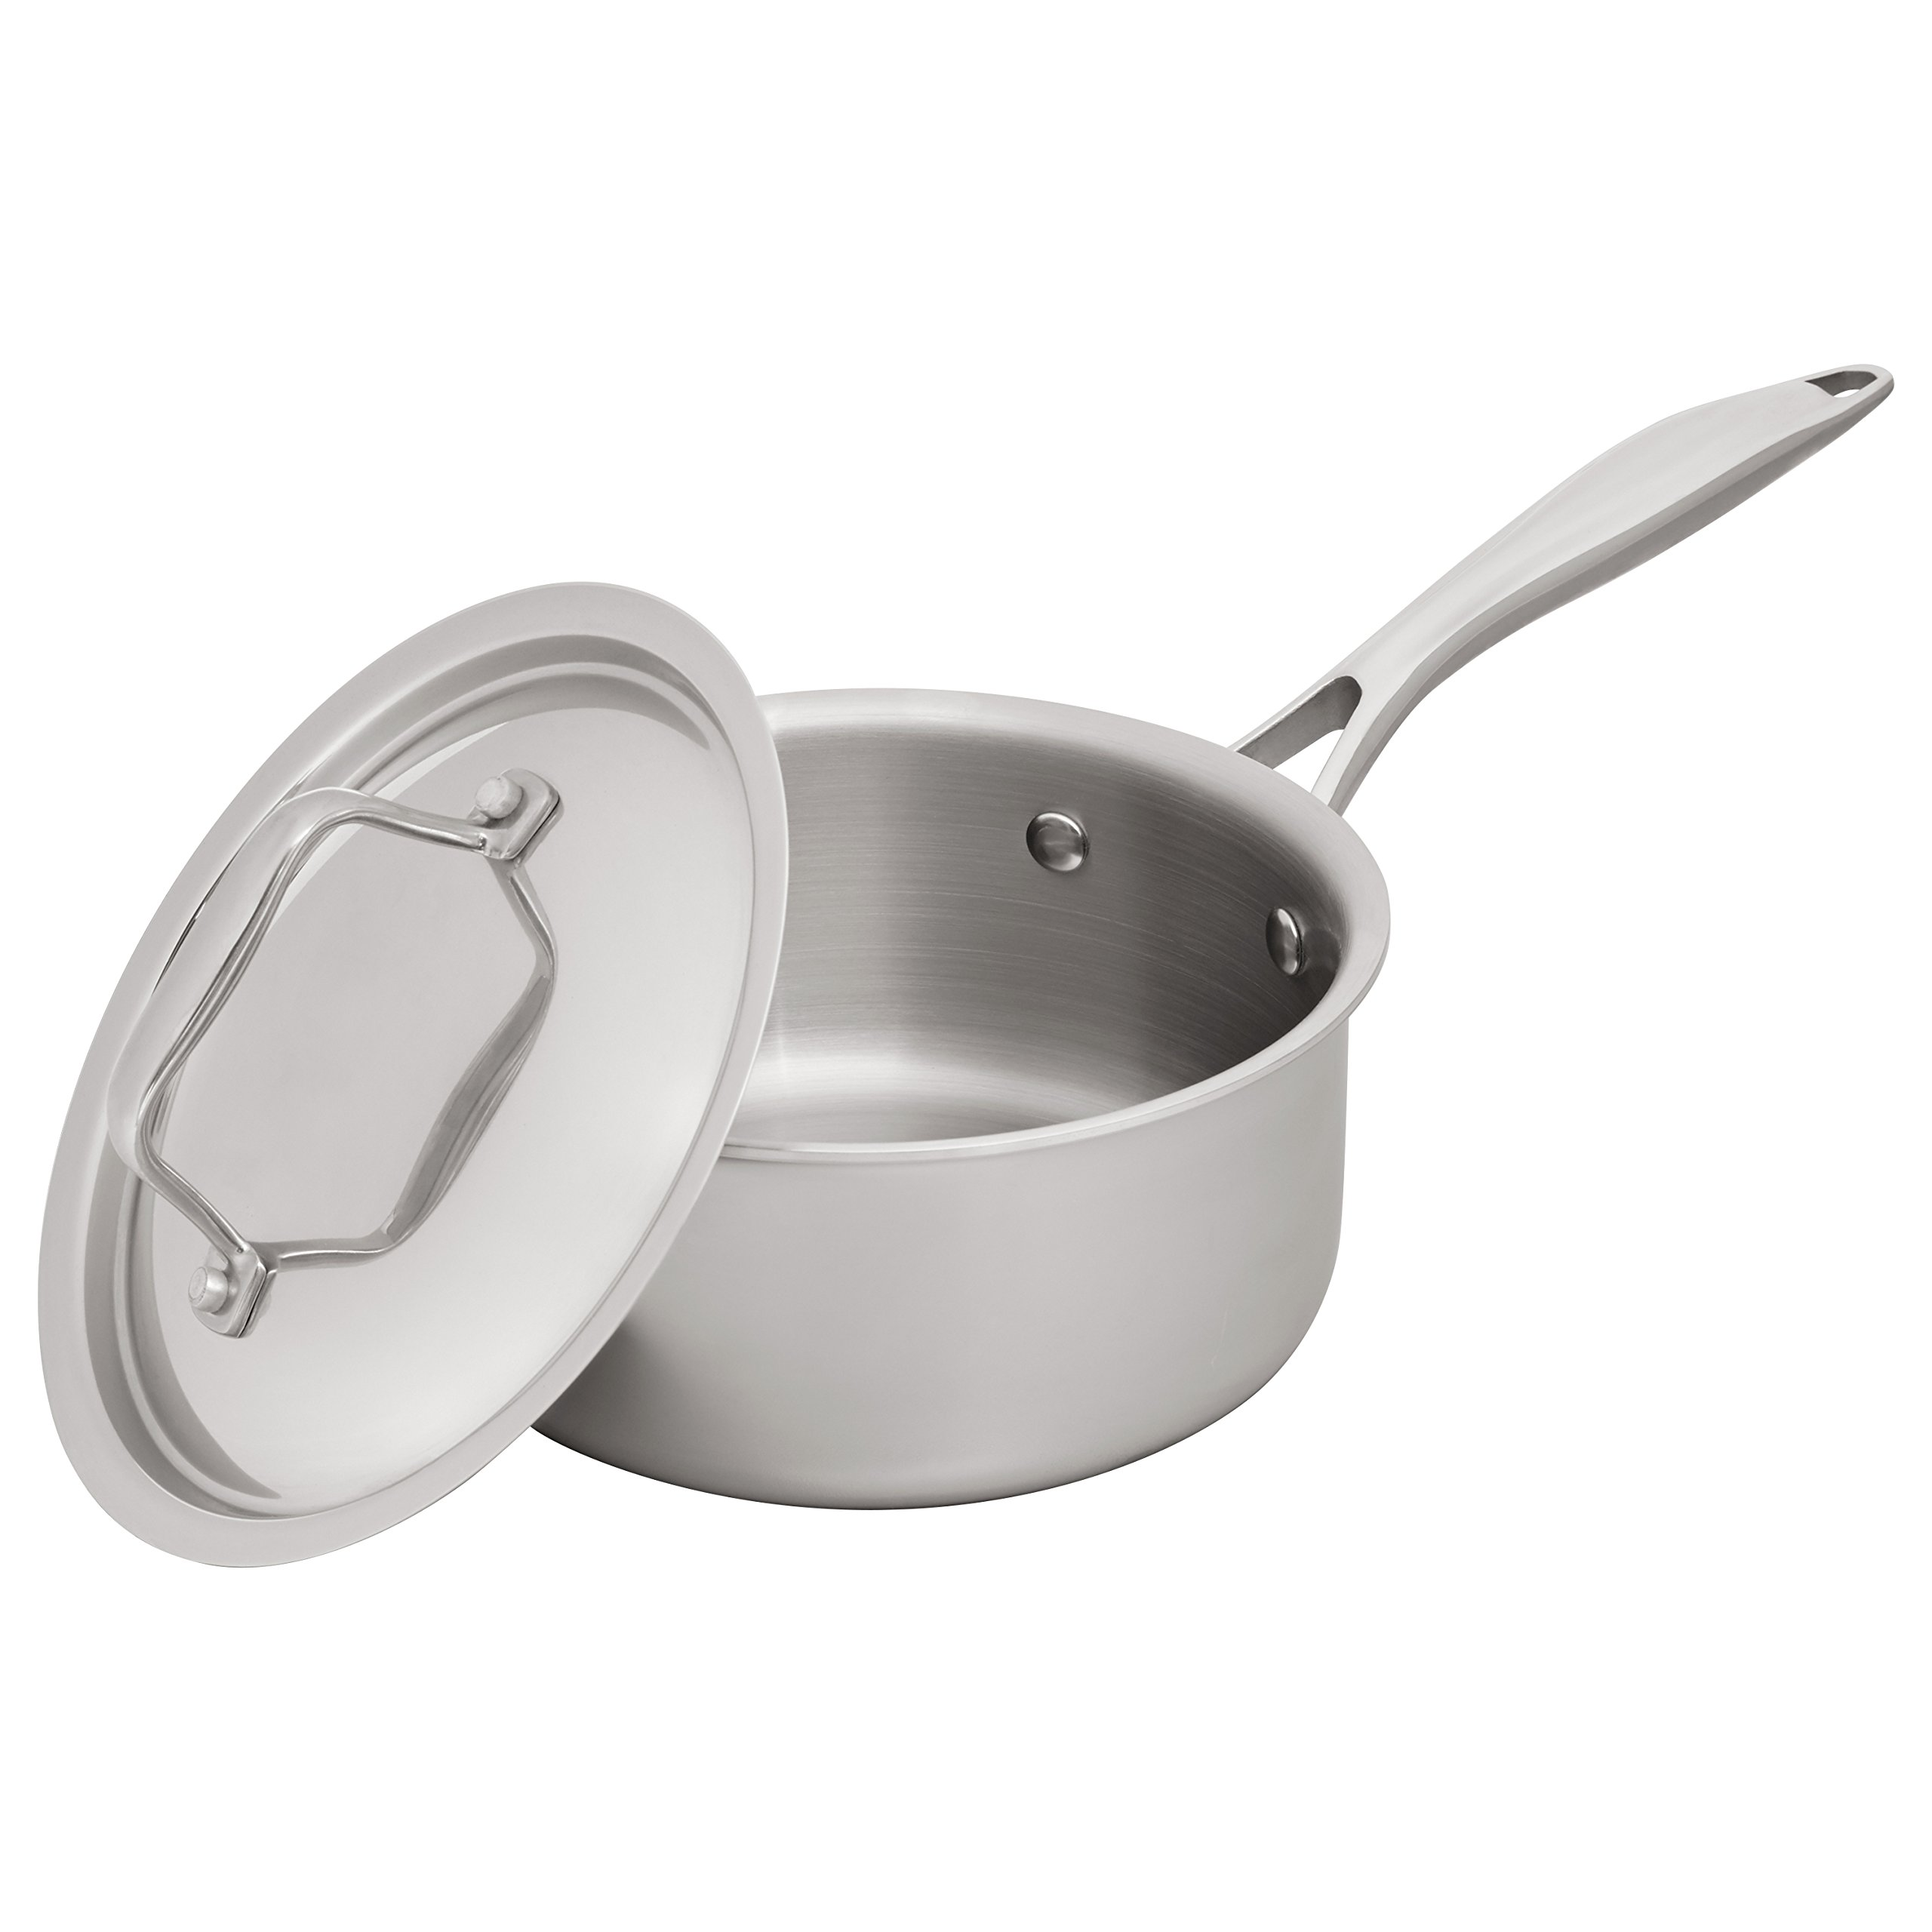 Stone & Beam Sauce Pan With Lid, 1.5-Quart, Tri-Ply Stainless Steel